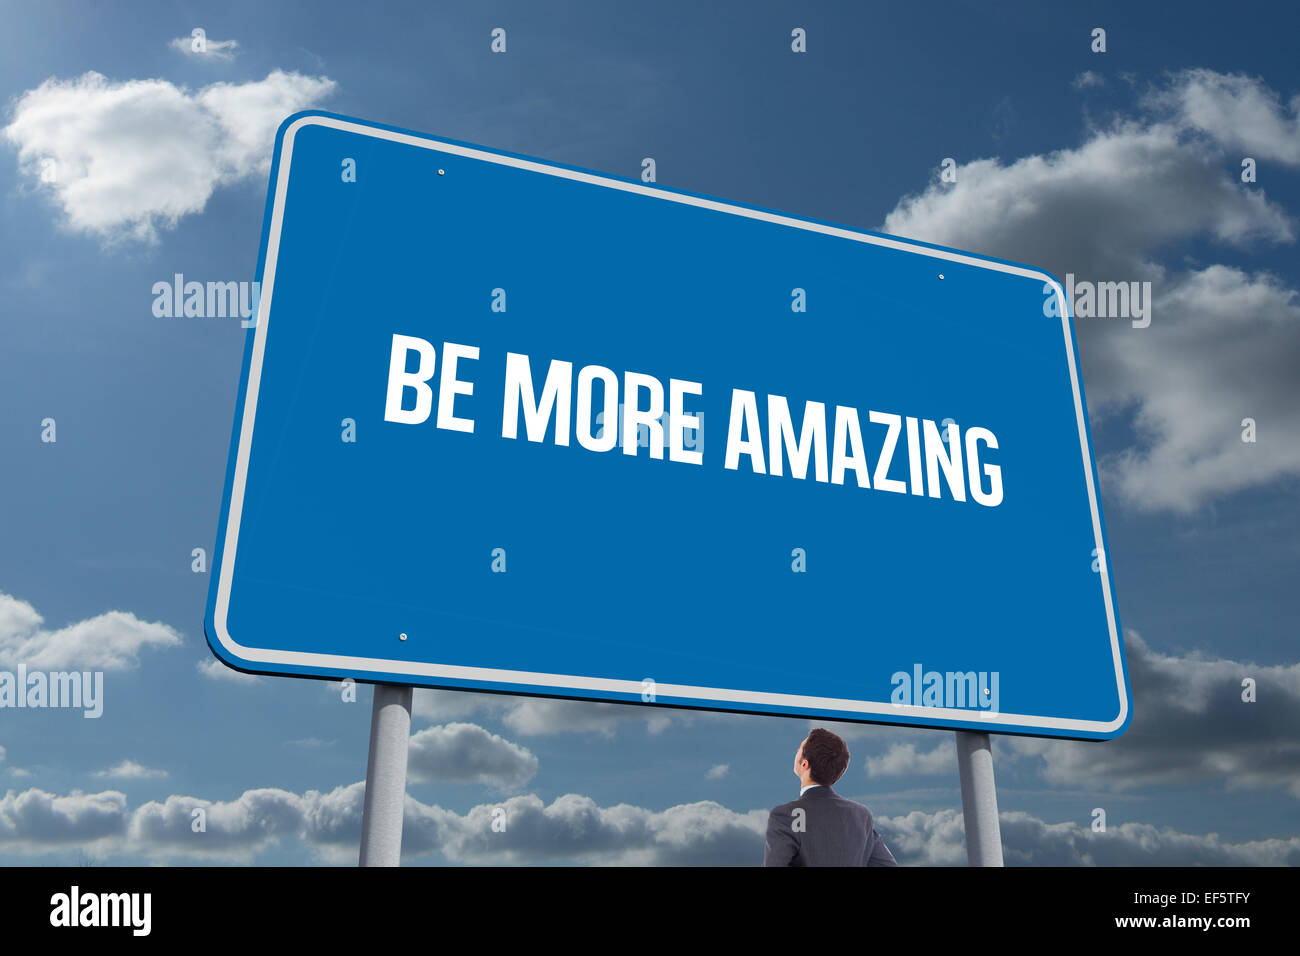 Be more amazing against sky and clouds - Stock Image